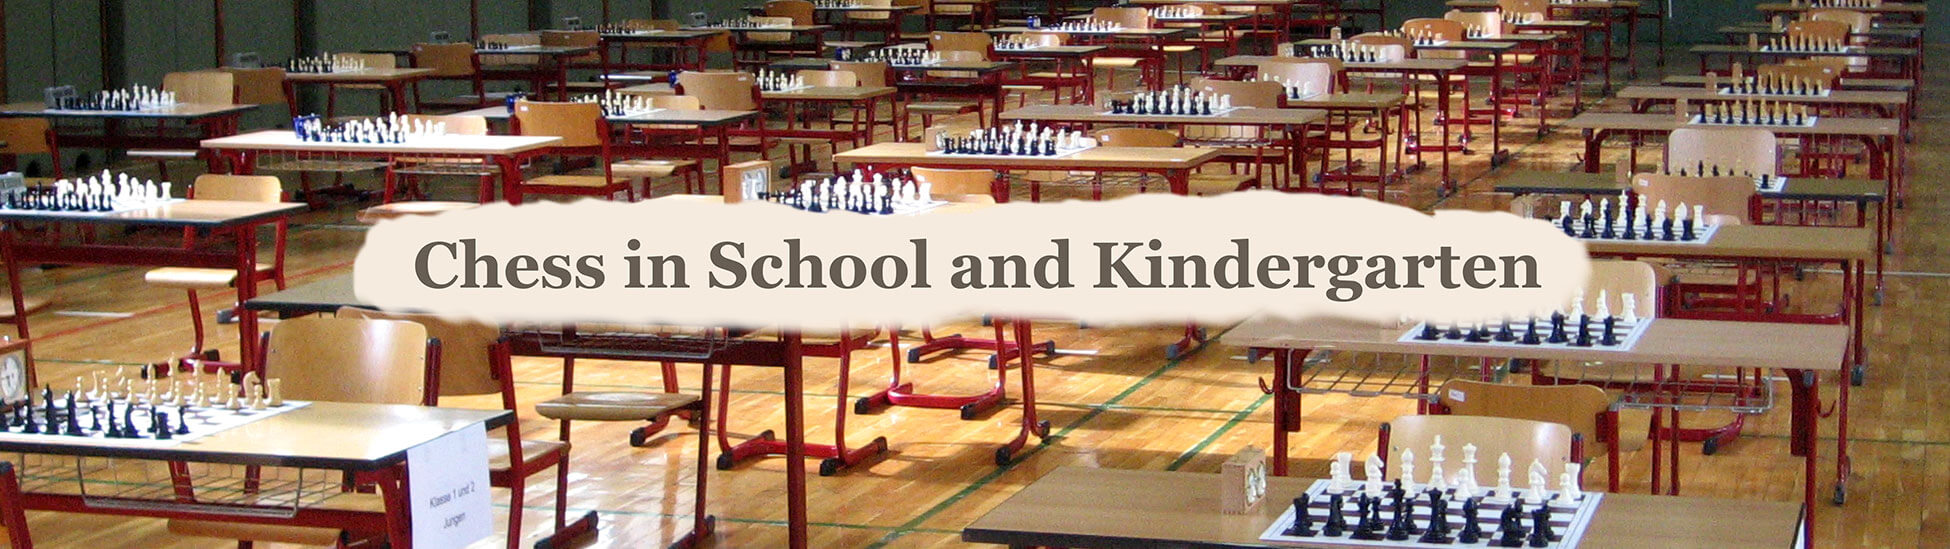 chess in school and kindergarten